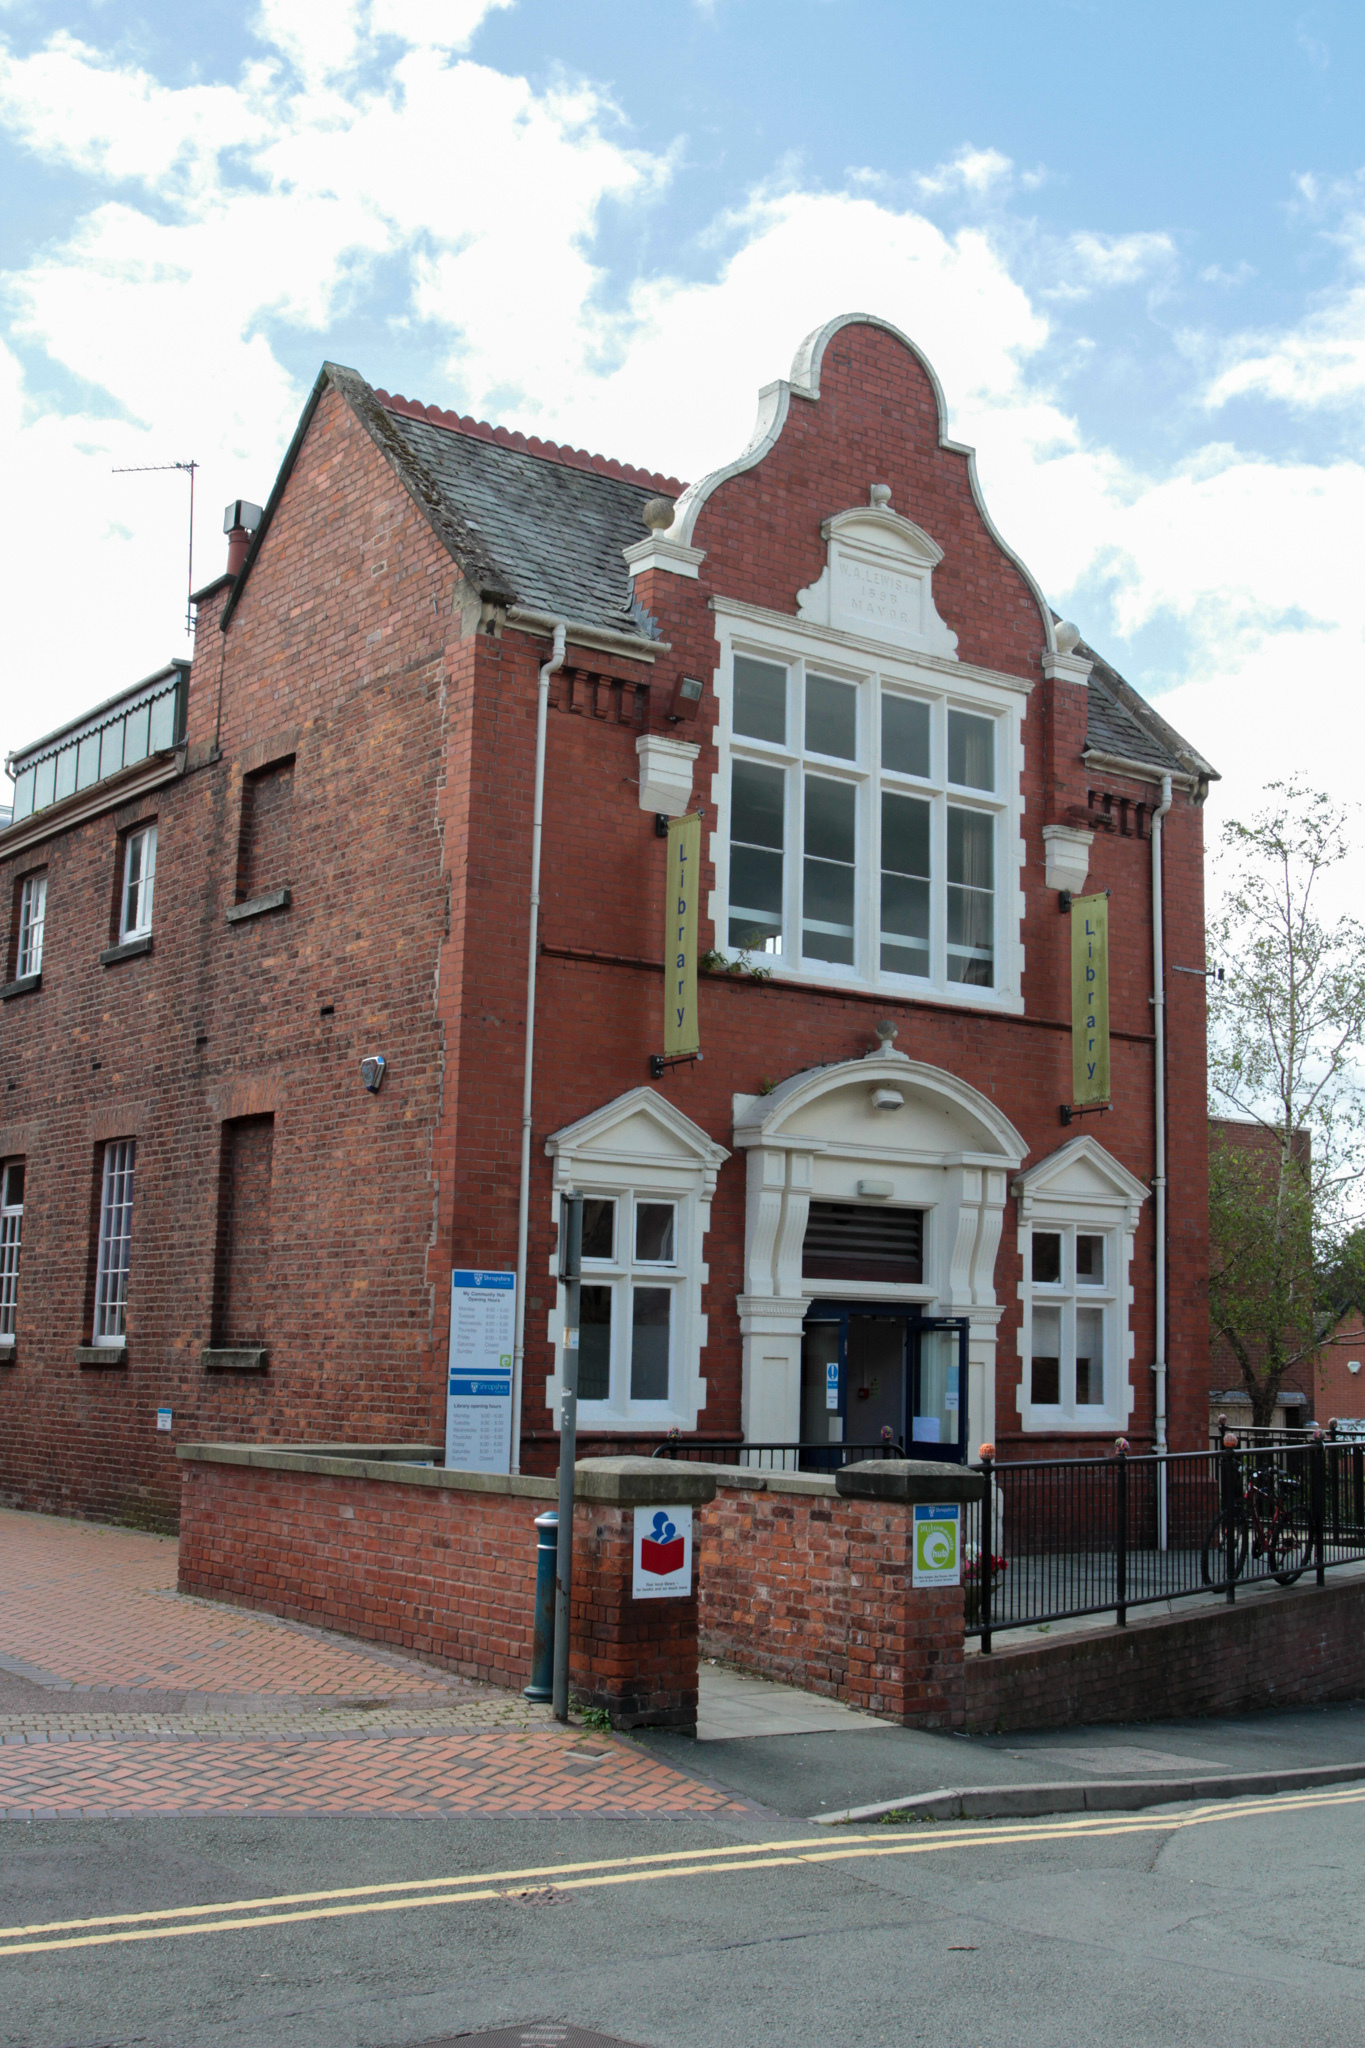 Oswestry views file stock images July 2016..Oswestry Library..HD270716.